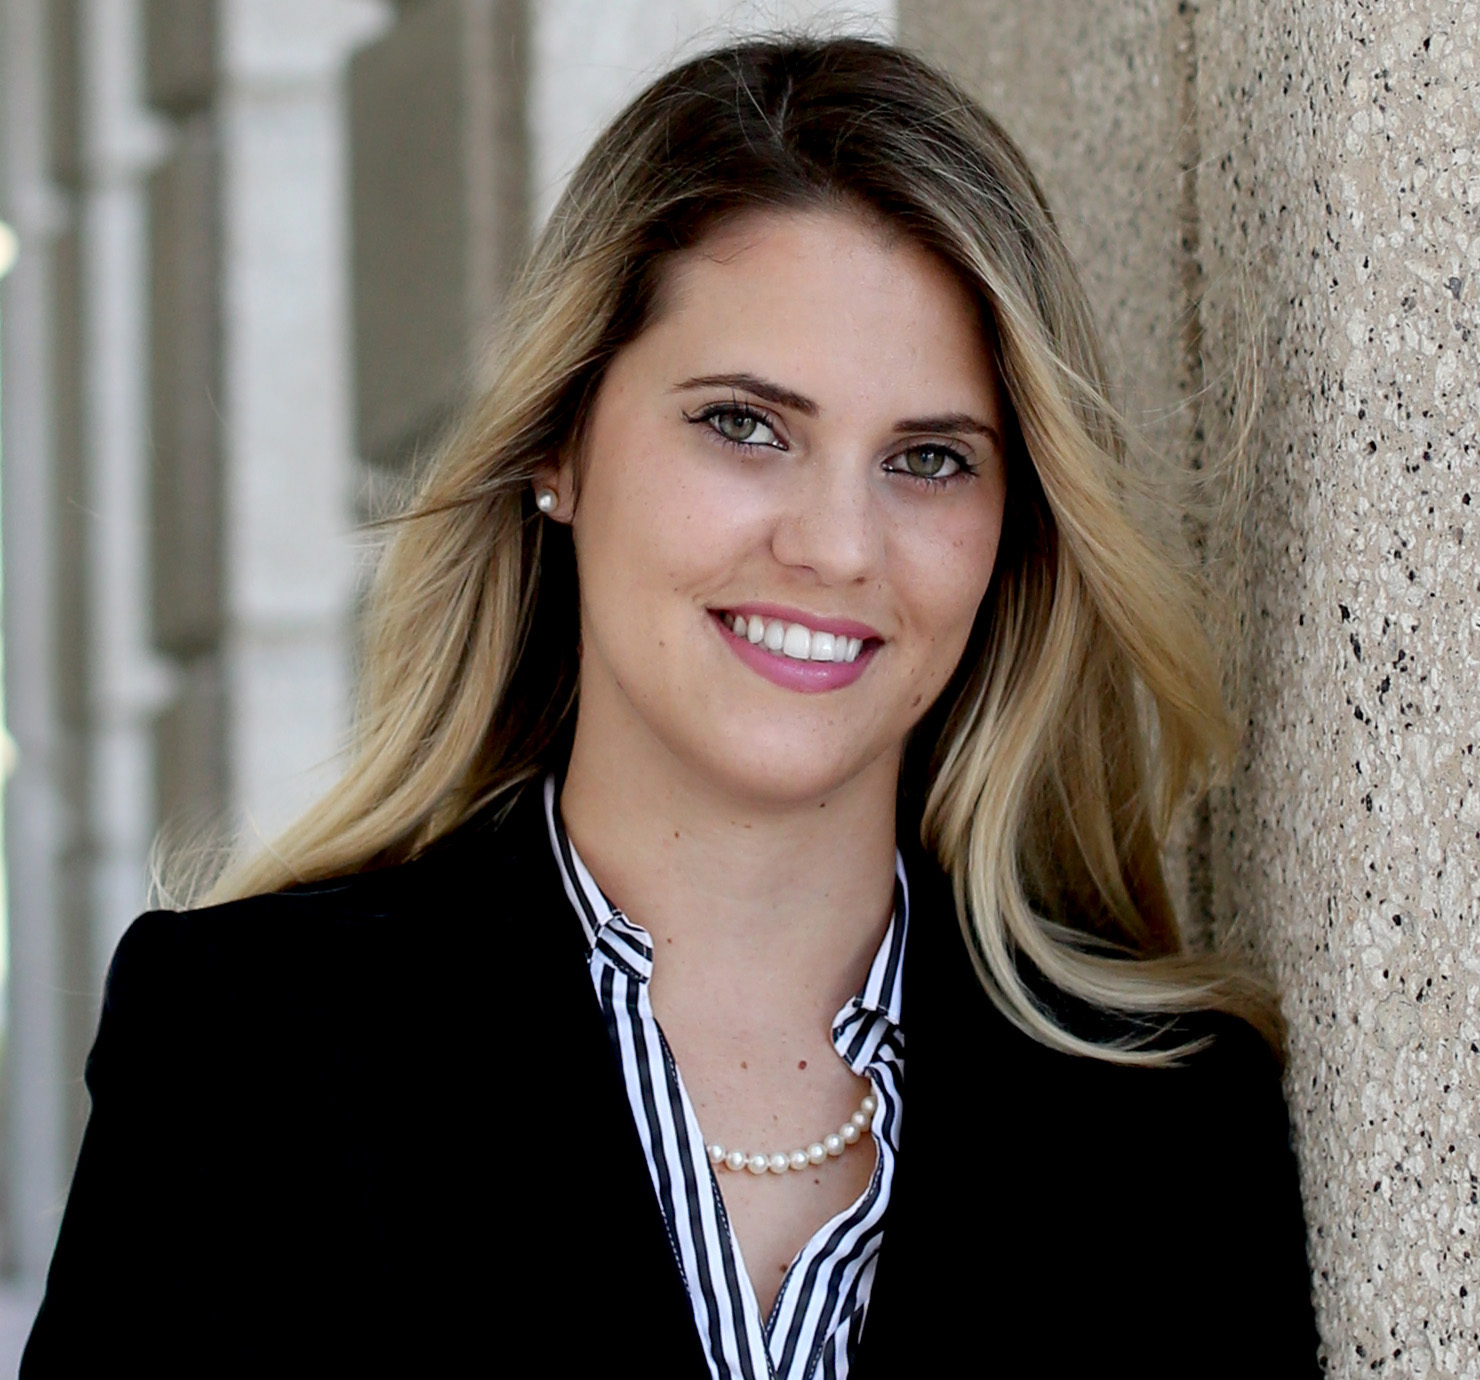 Best of Doral™ Attorneys introduces Adiagnis S. Morales.